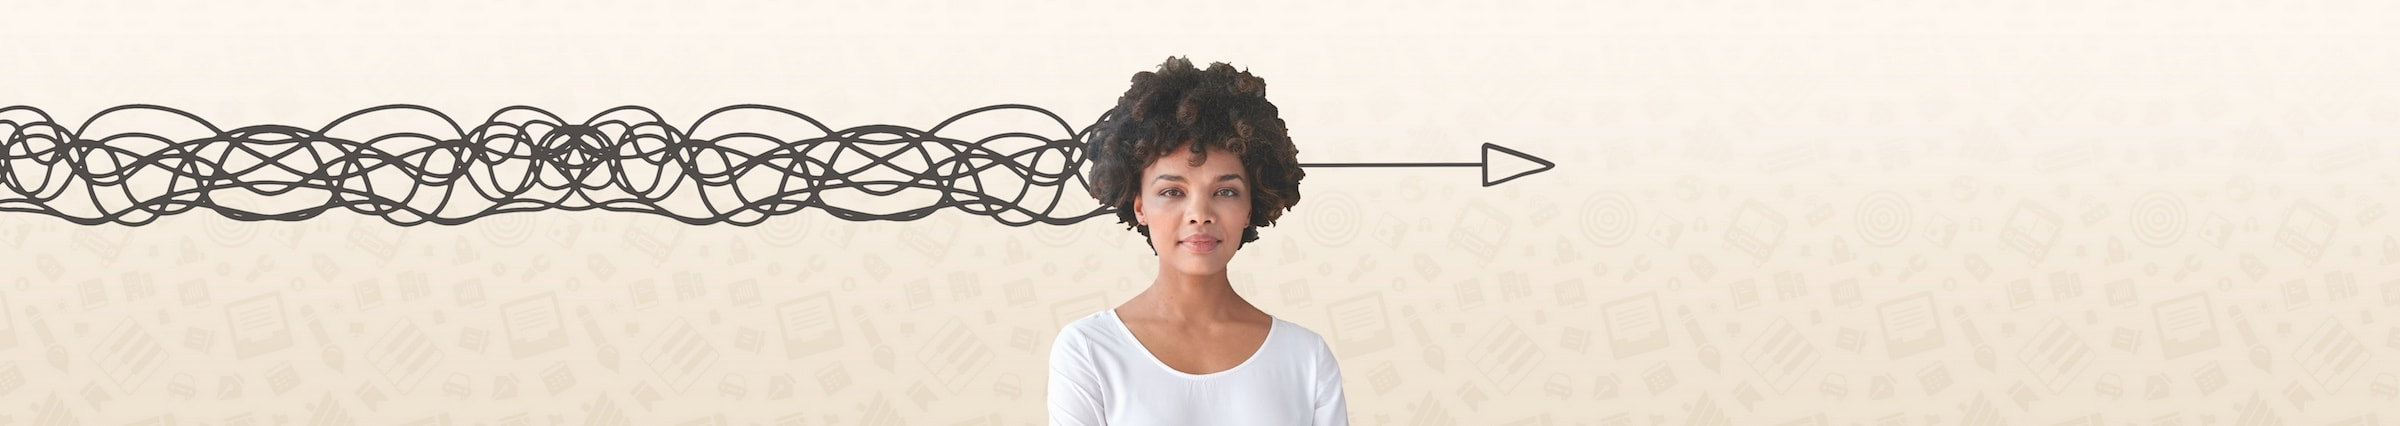 woman standing in front of graphic background with the appearance of a squiggly line entering the left of her head and a single arrow emerging from the right hand side